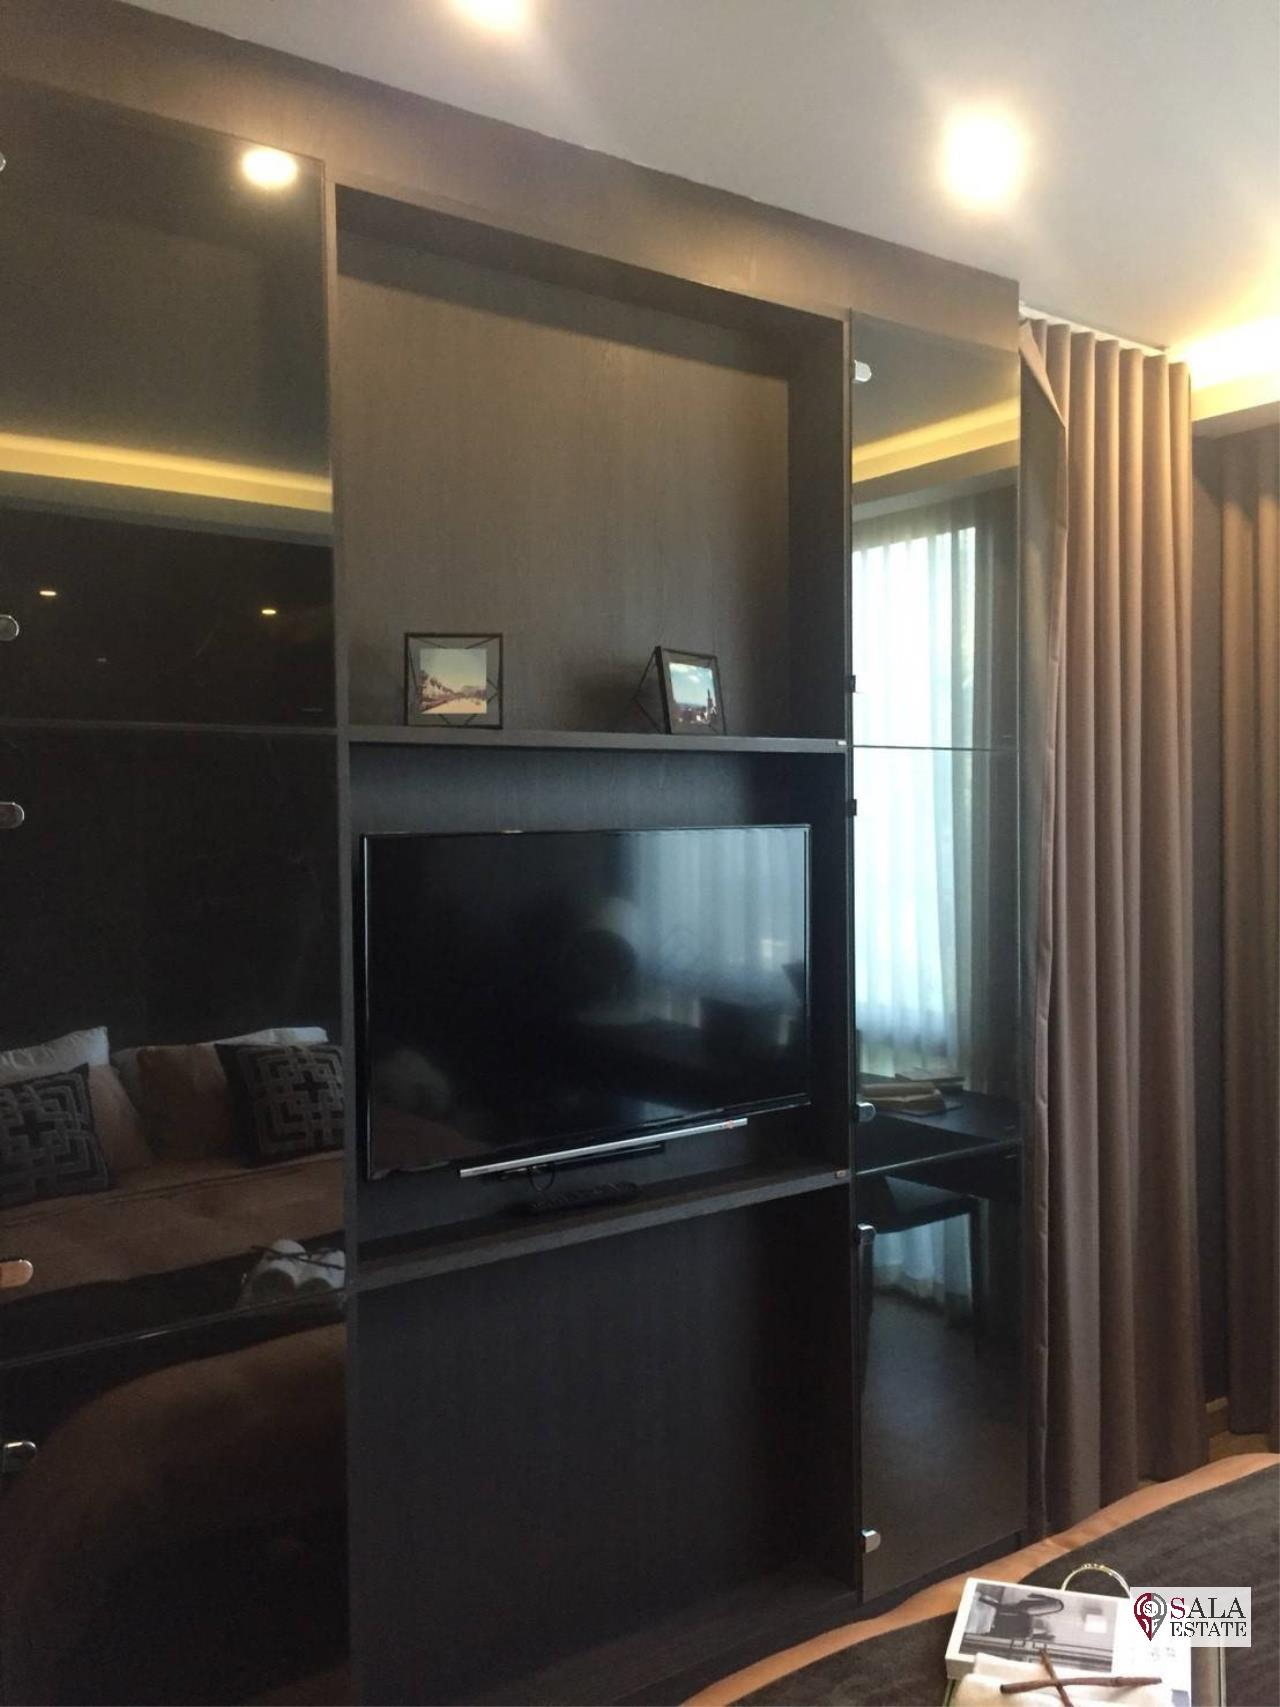 SALA ESTATE Agency's ( FOR SALE ) CONDO 168 SUKHUMVIT 36 - LOW RISE, 1 BEDROOM 1 BATHROOM, FULLY FURNISHED 5